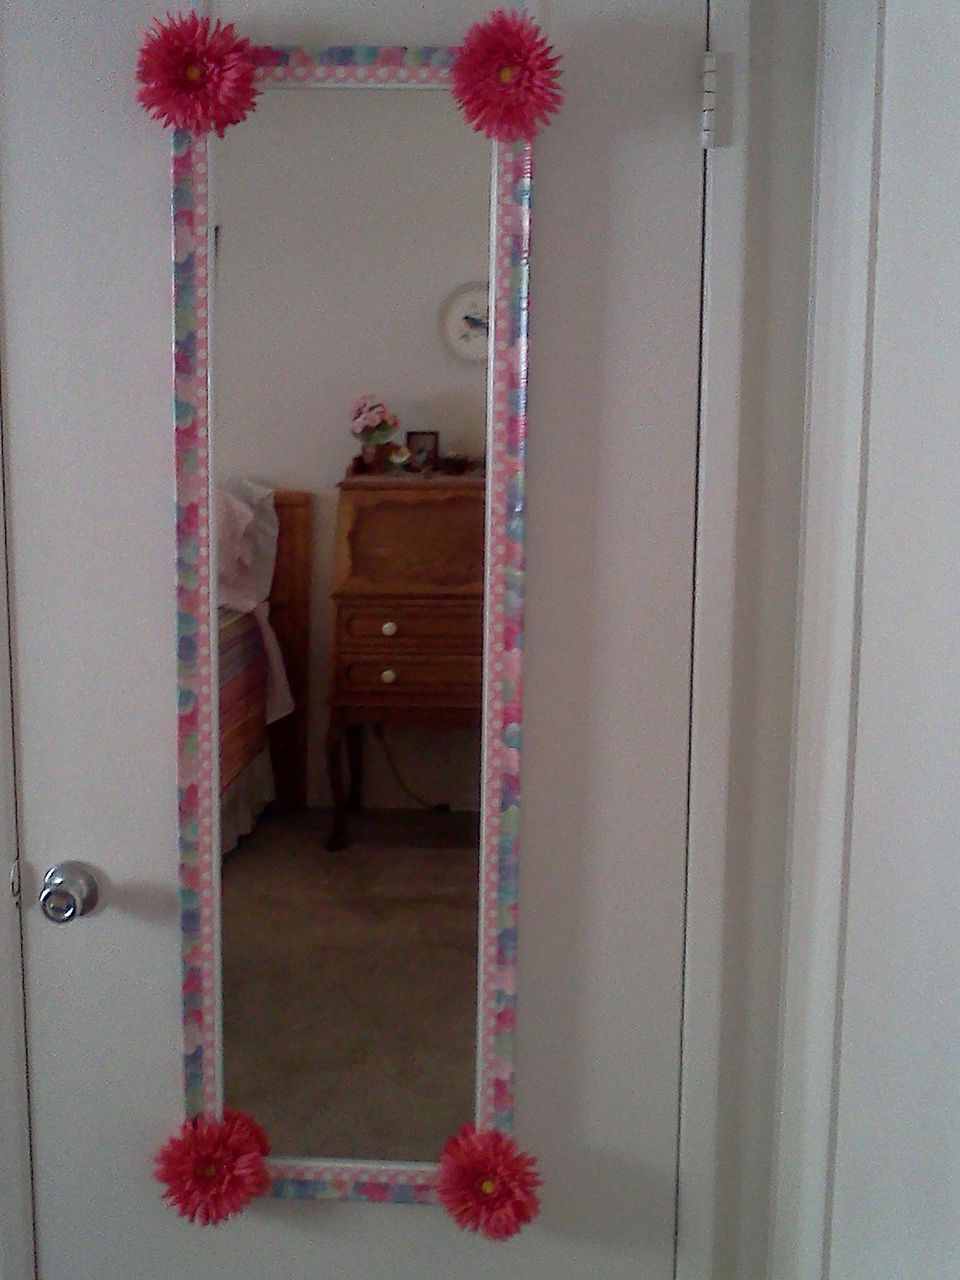 Duct tape framing a mirror